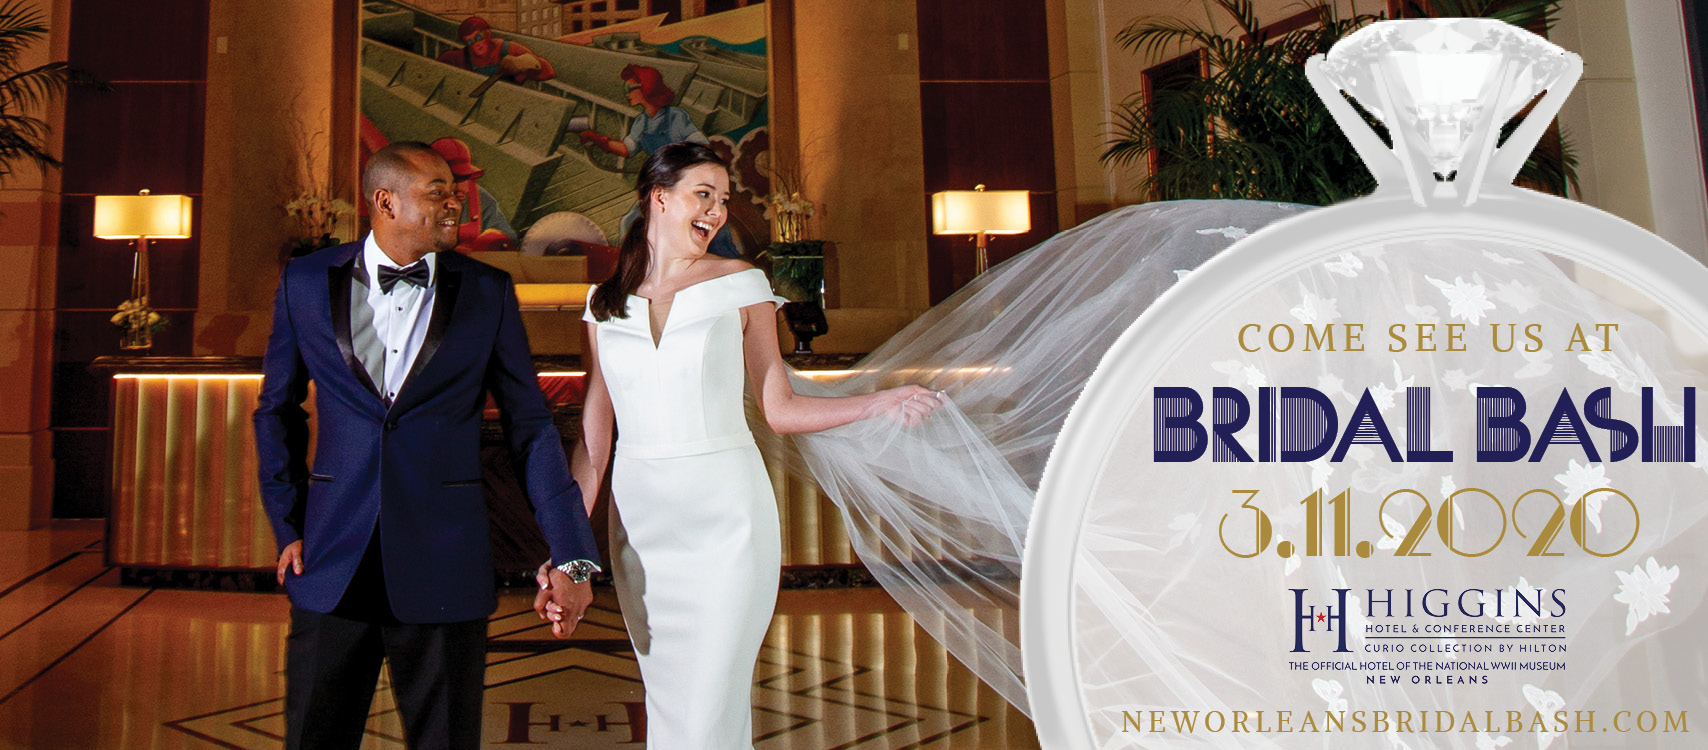 Bridal Bash 2020 | March 11, 2020 At The Higgins Hotel In New Orleans